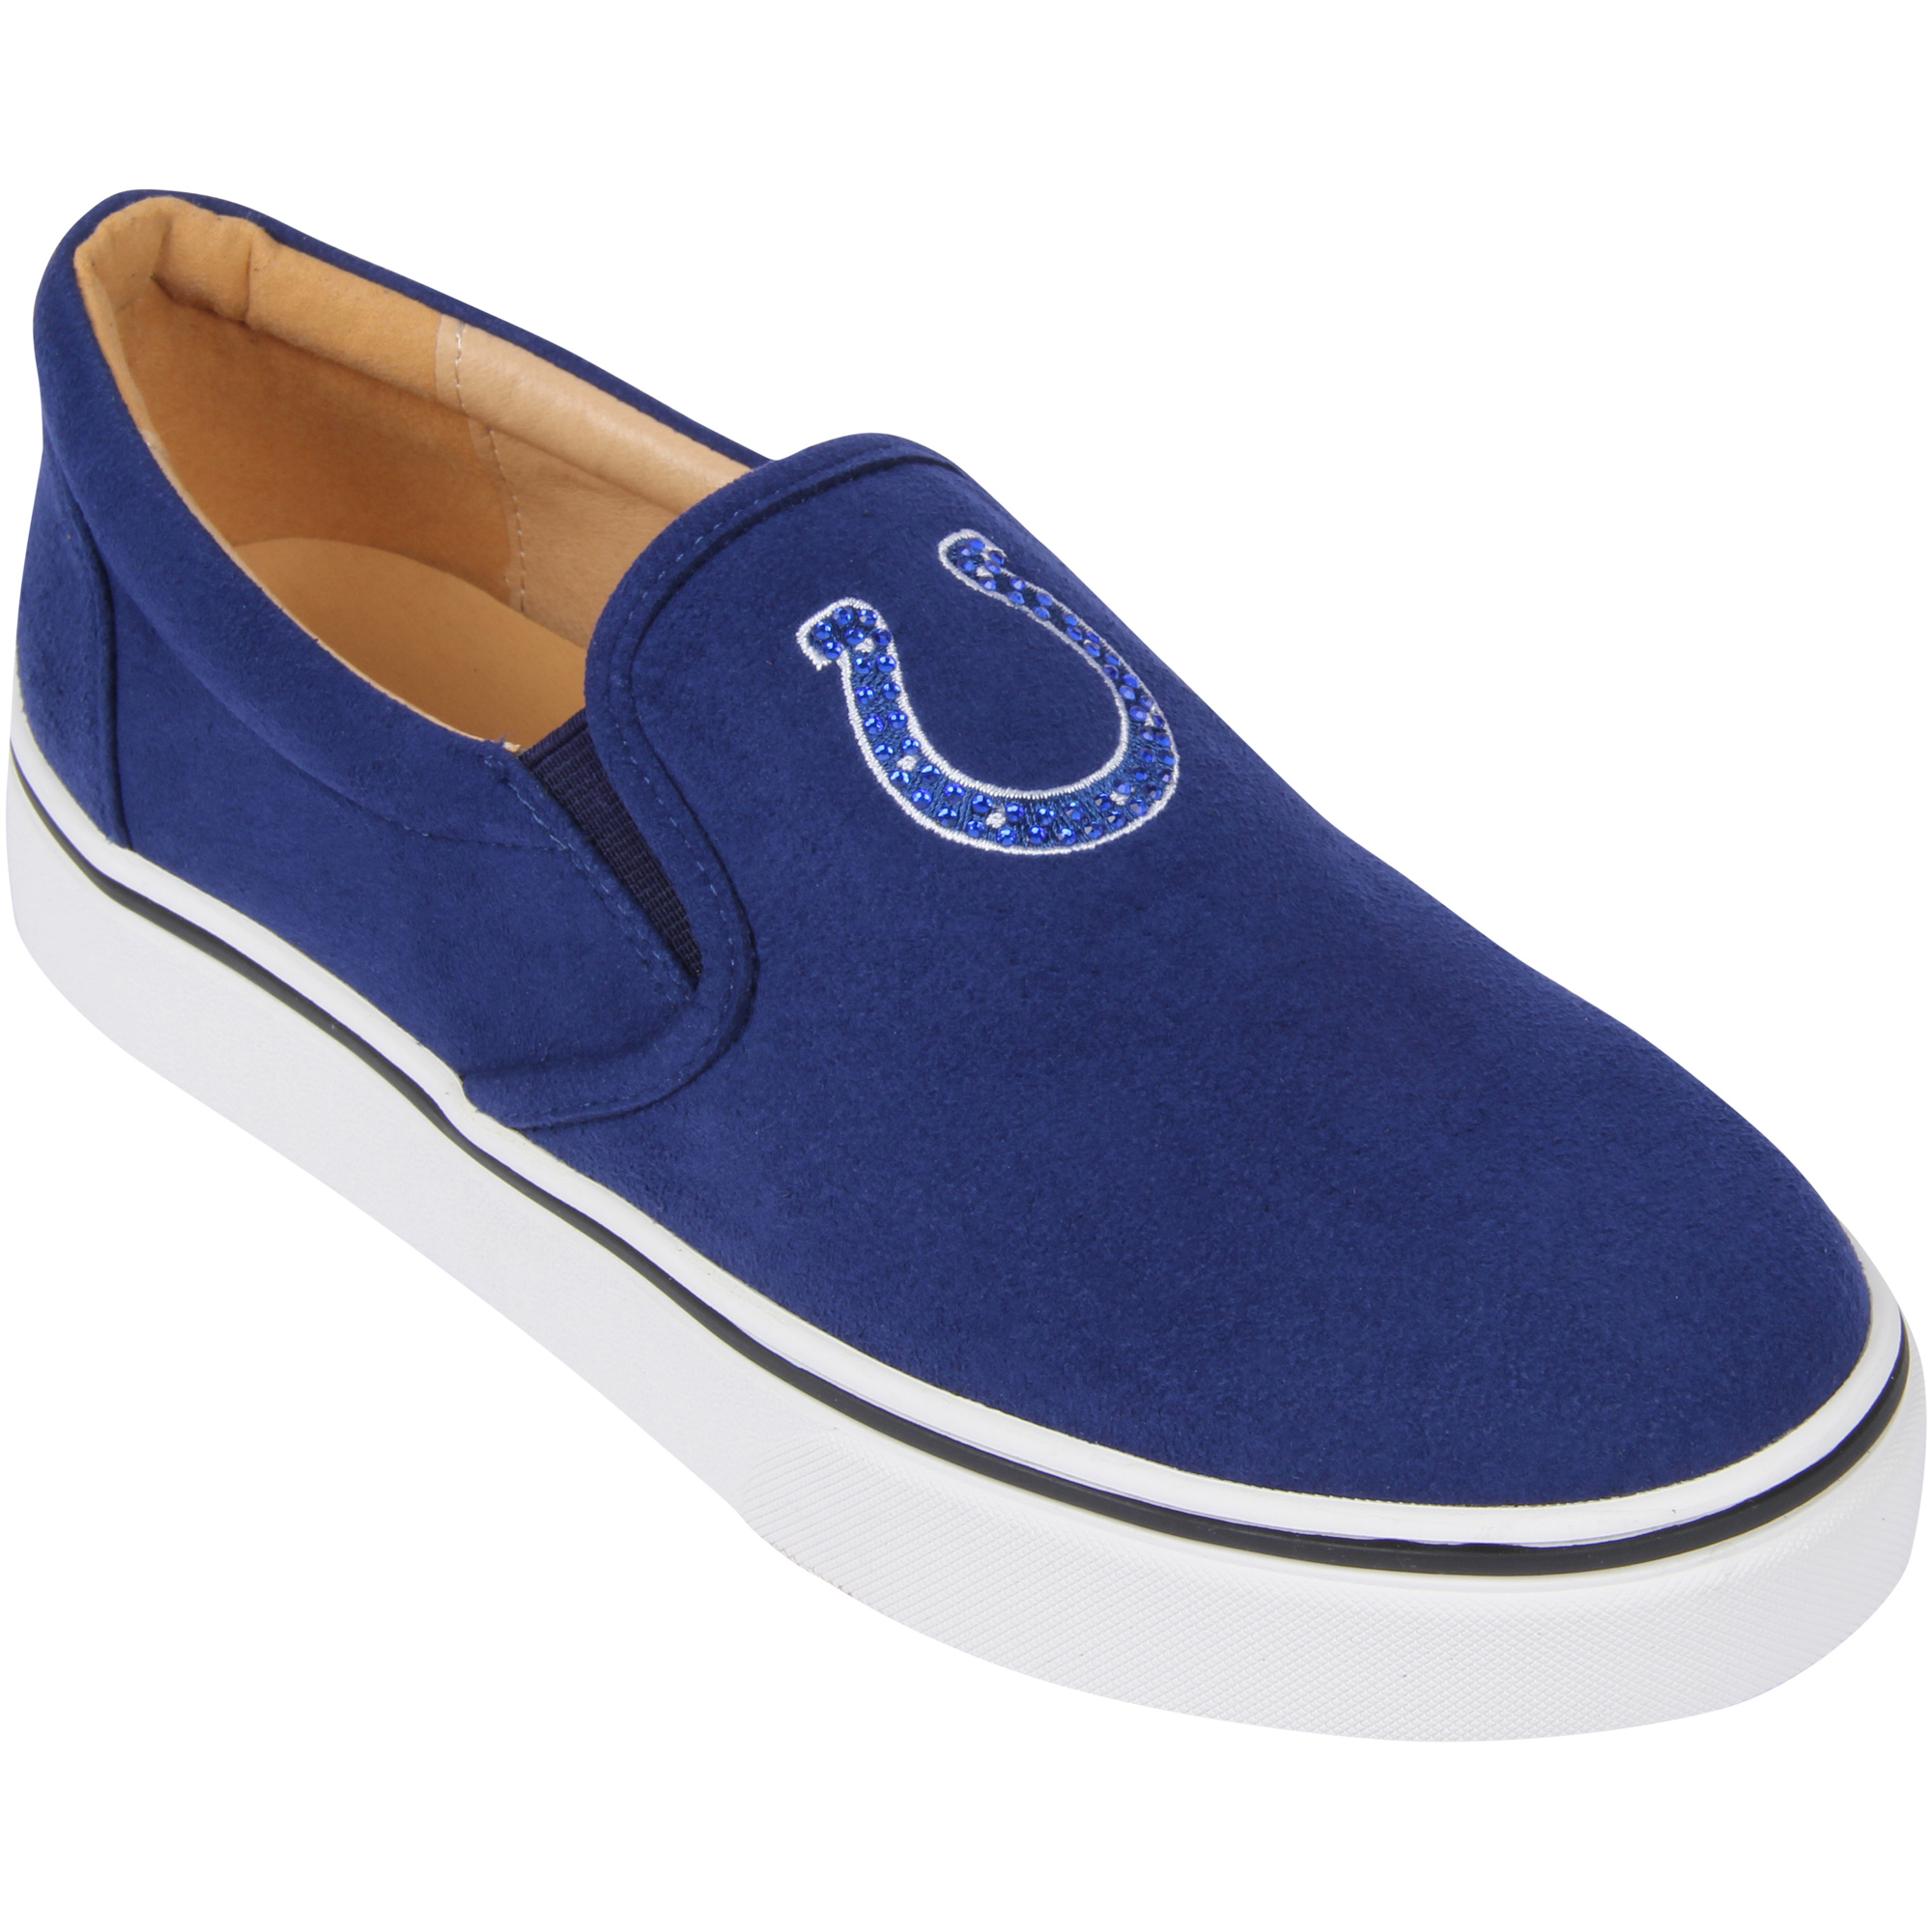 Indianapolis Colts Cuce Women's Suede Slip On Shoe - Royal